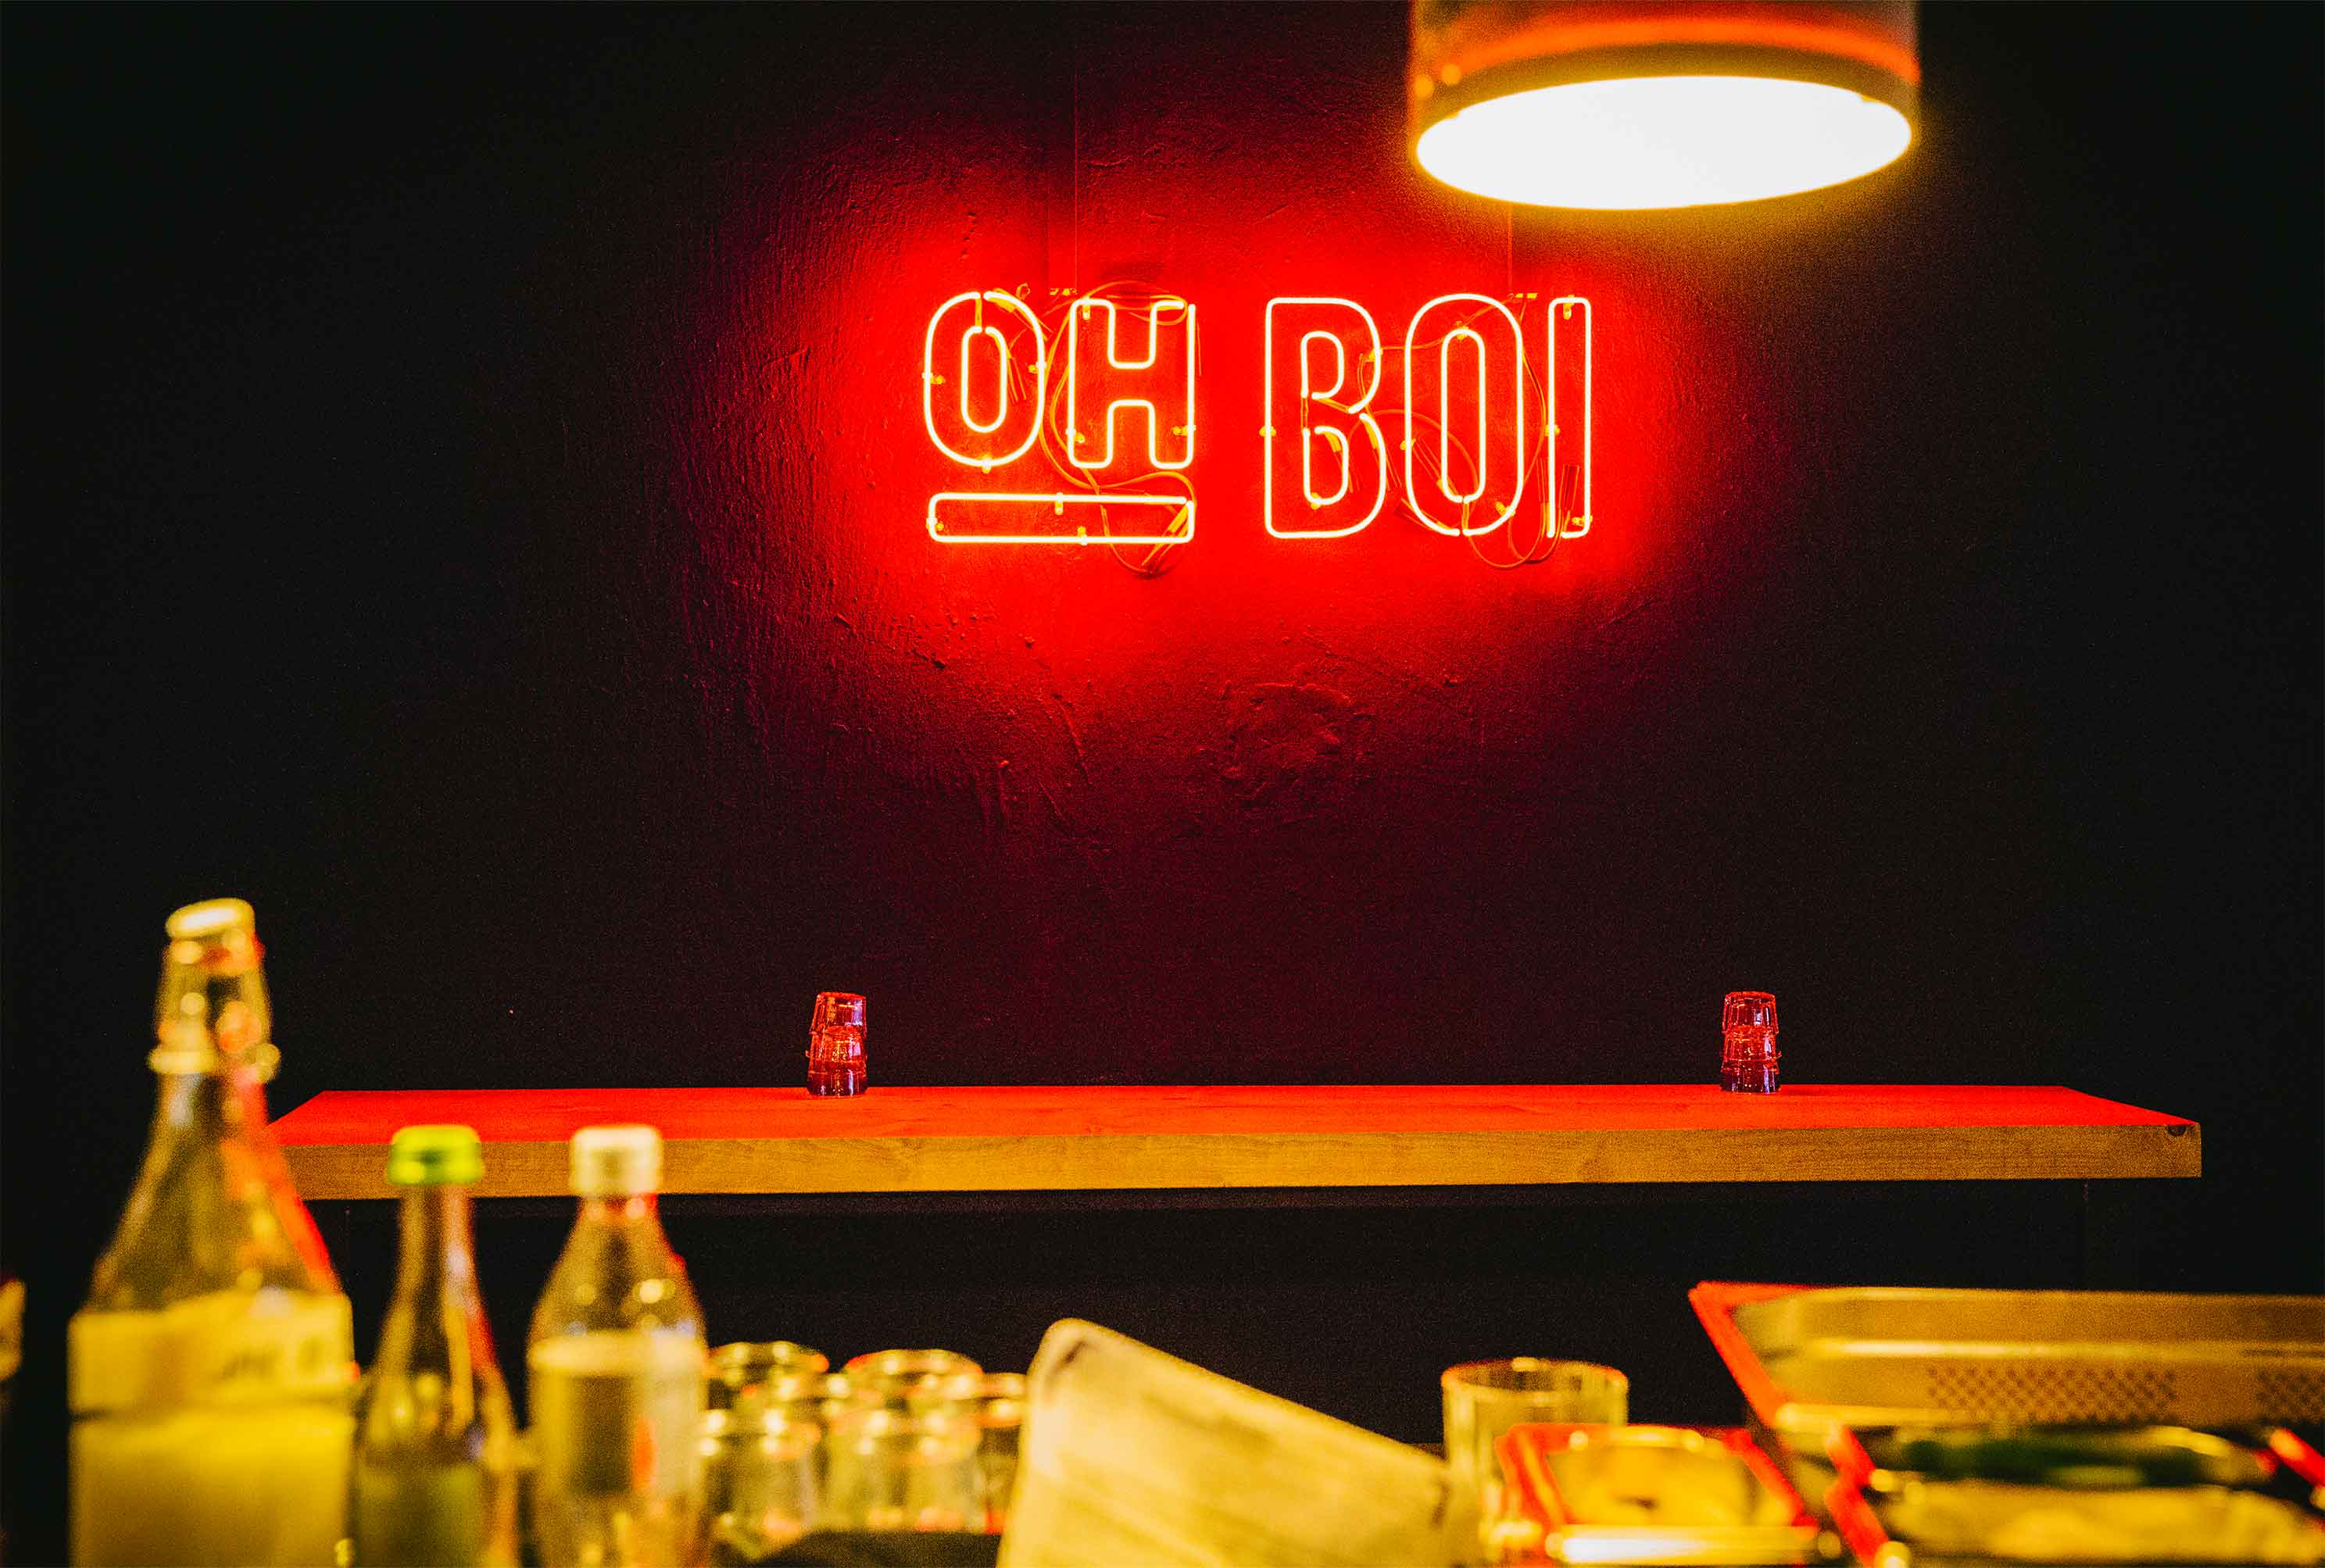 02-oh-boi-bar-food-augsburg-branding-design-neon-bar